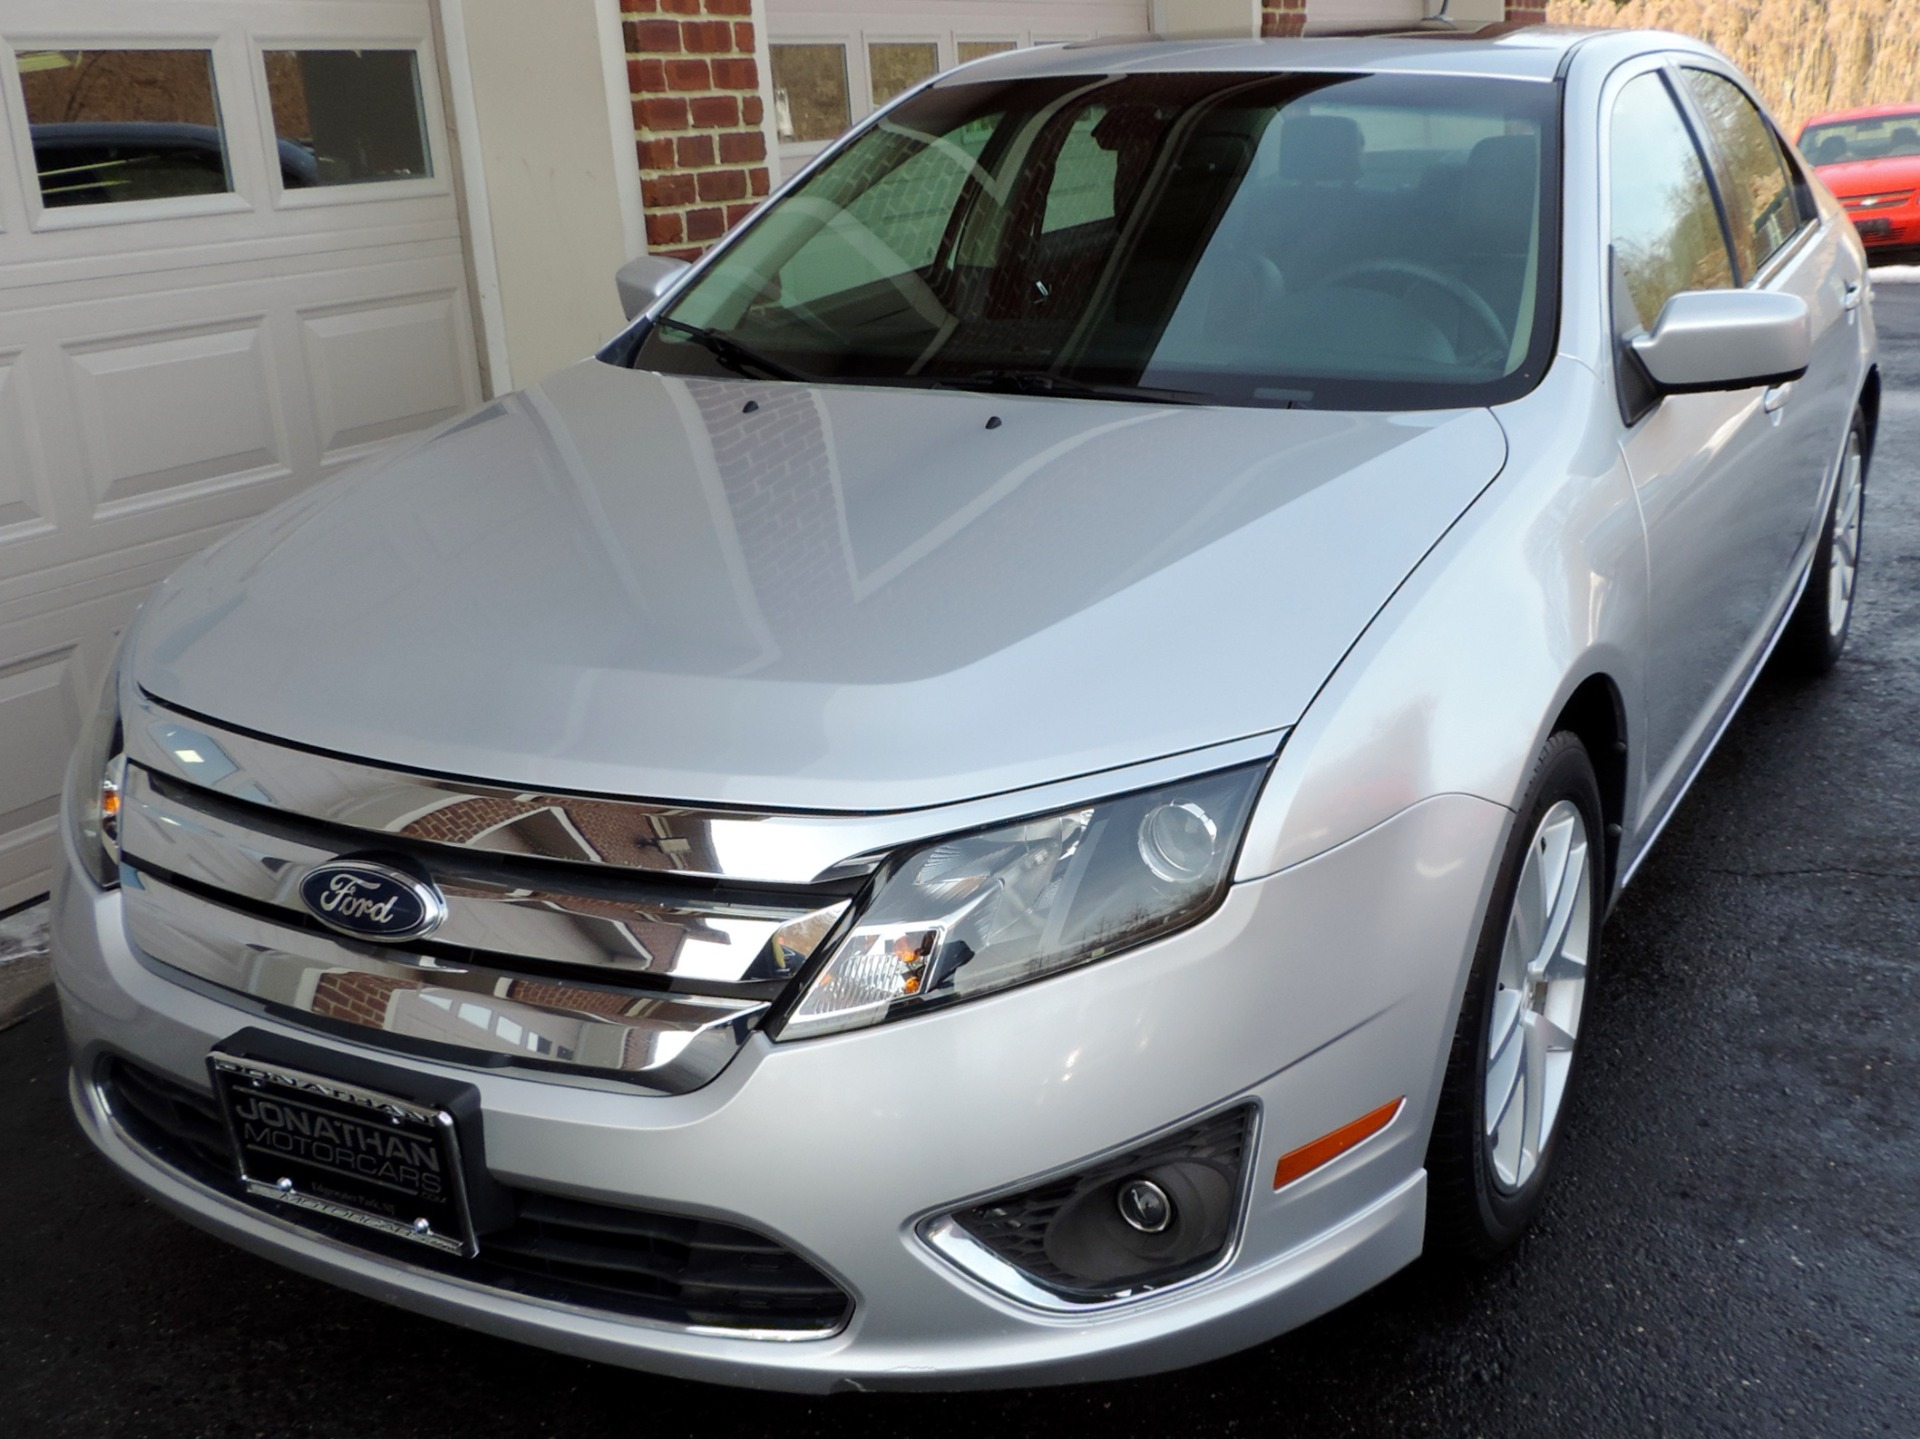 Ford Dealers Nj >> 2012 Ford Fusion SEL Stock # 405710 for sale near ...